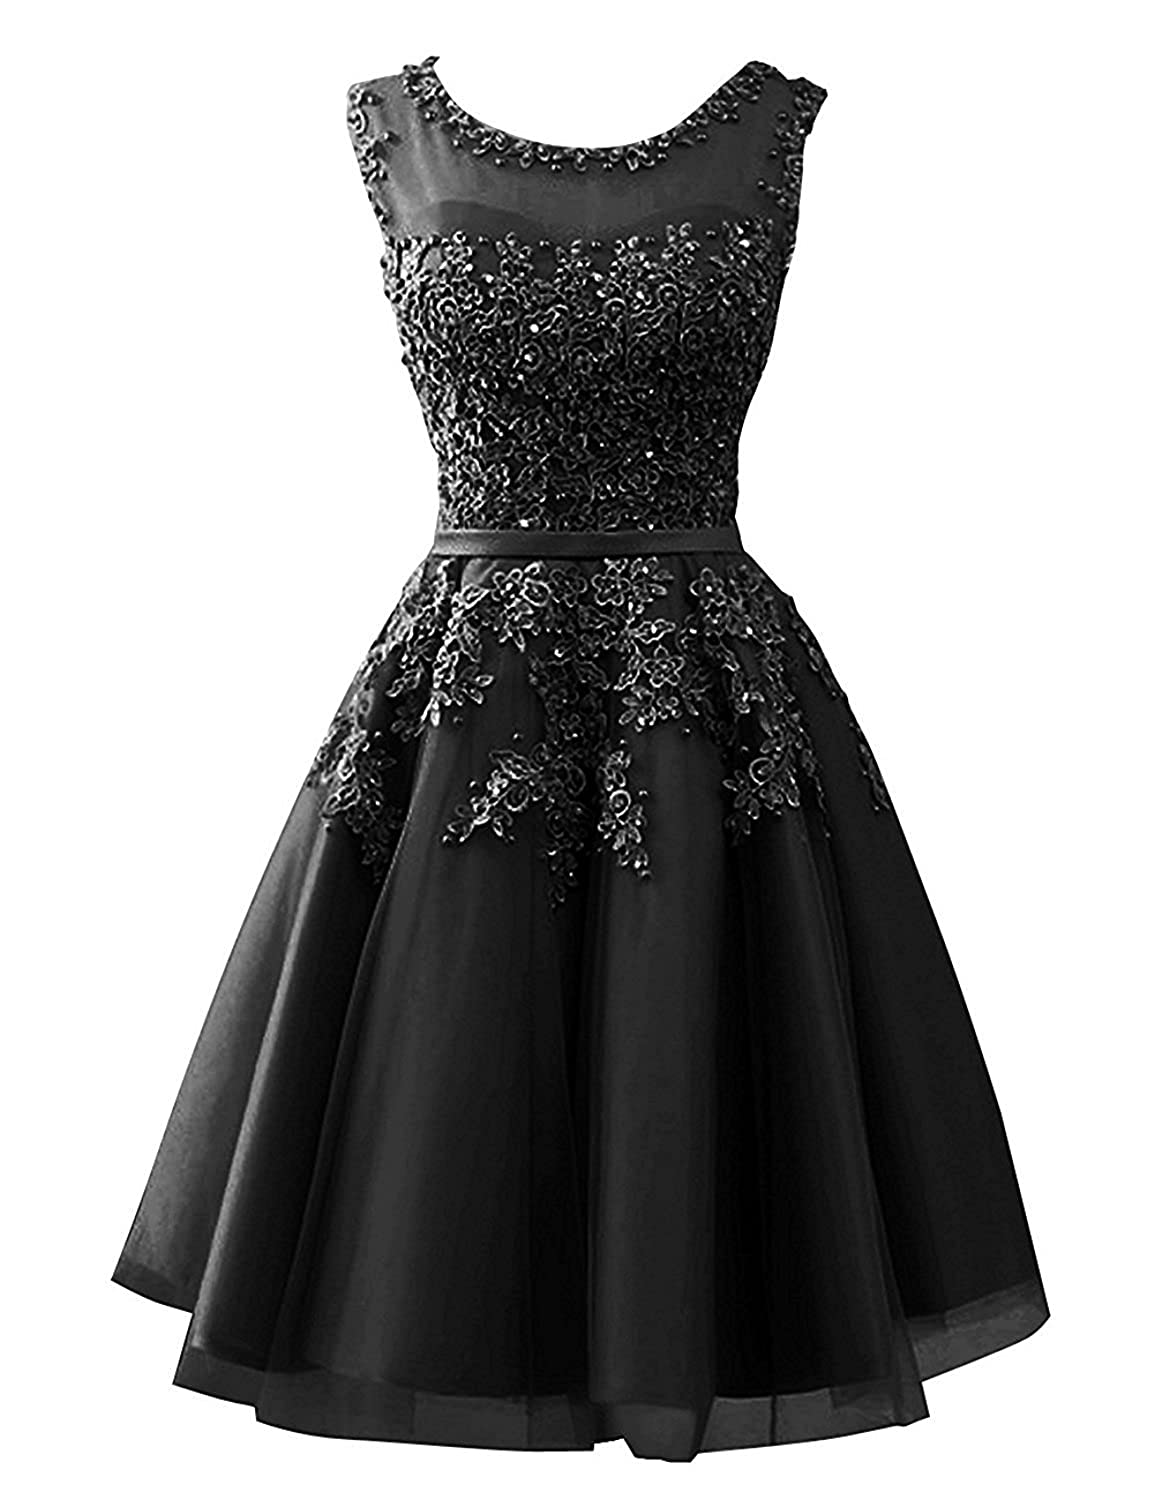 f6d391b0434 Tulle Short Junior Homecoming Dresses Prom Evening Dress Party Formal Gowns  Lace Appliques at Amazon Women s Clothing store